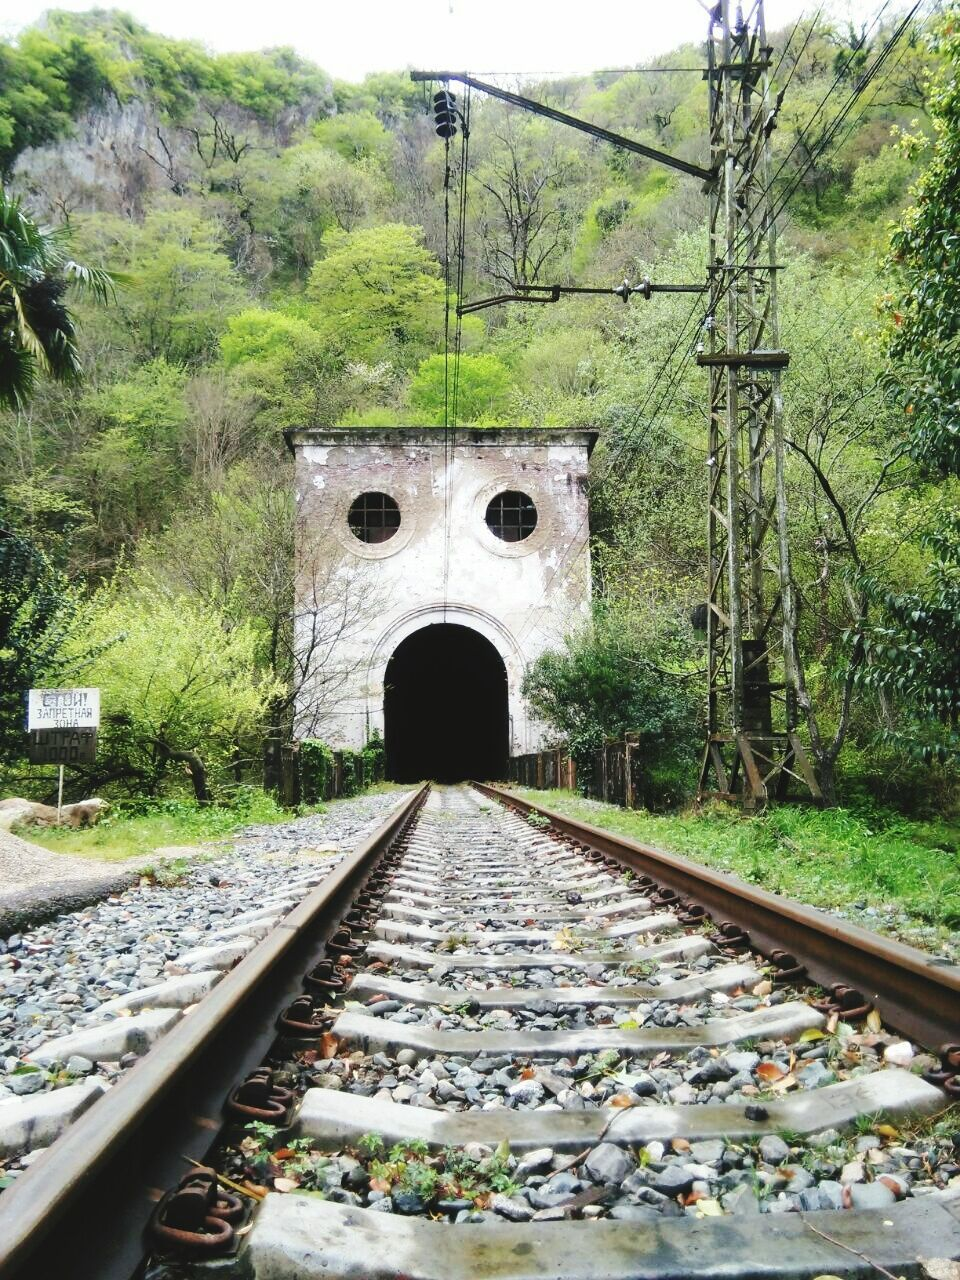 railroad track, transportation, rail transportation, bridge - man made structure, the way forward, tree, arch, built structure, day, architecture, no people, tunnel, train - vehicle, outdoors, public transportation, growth, nature